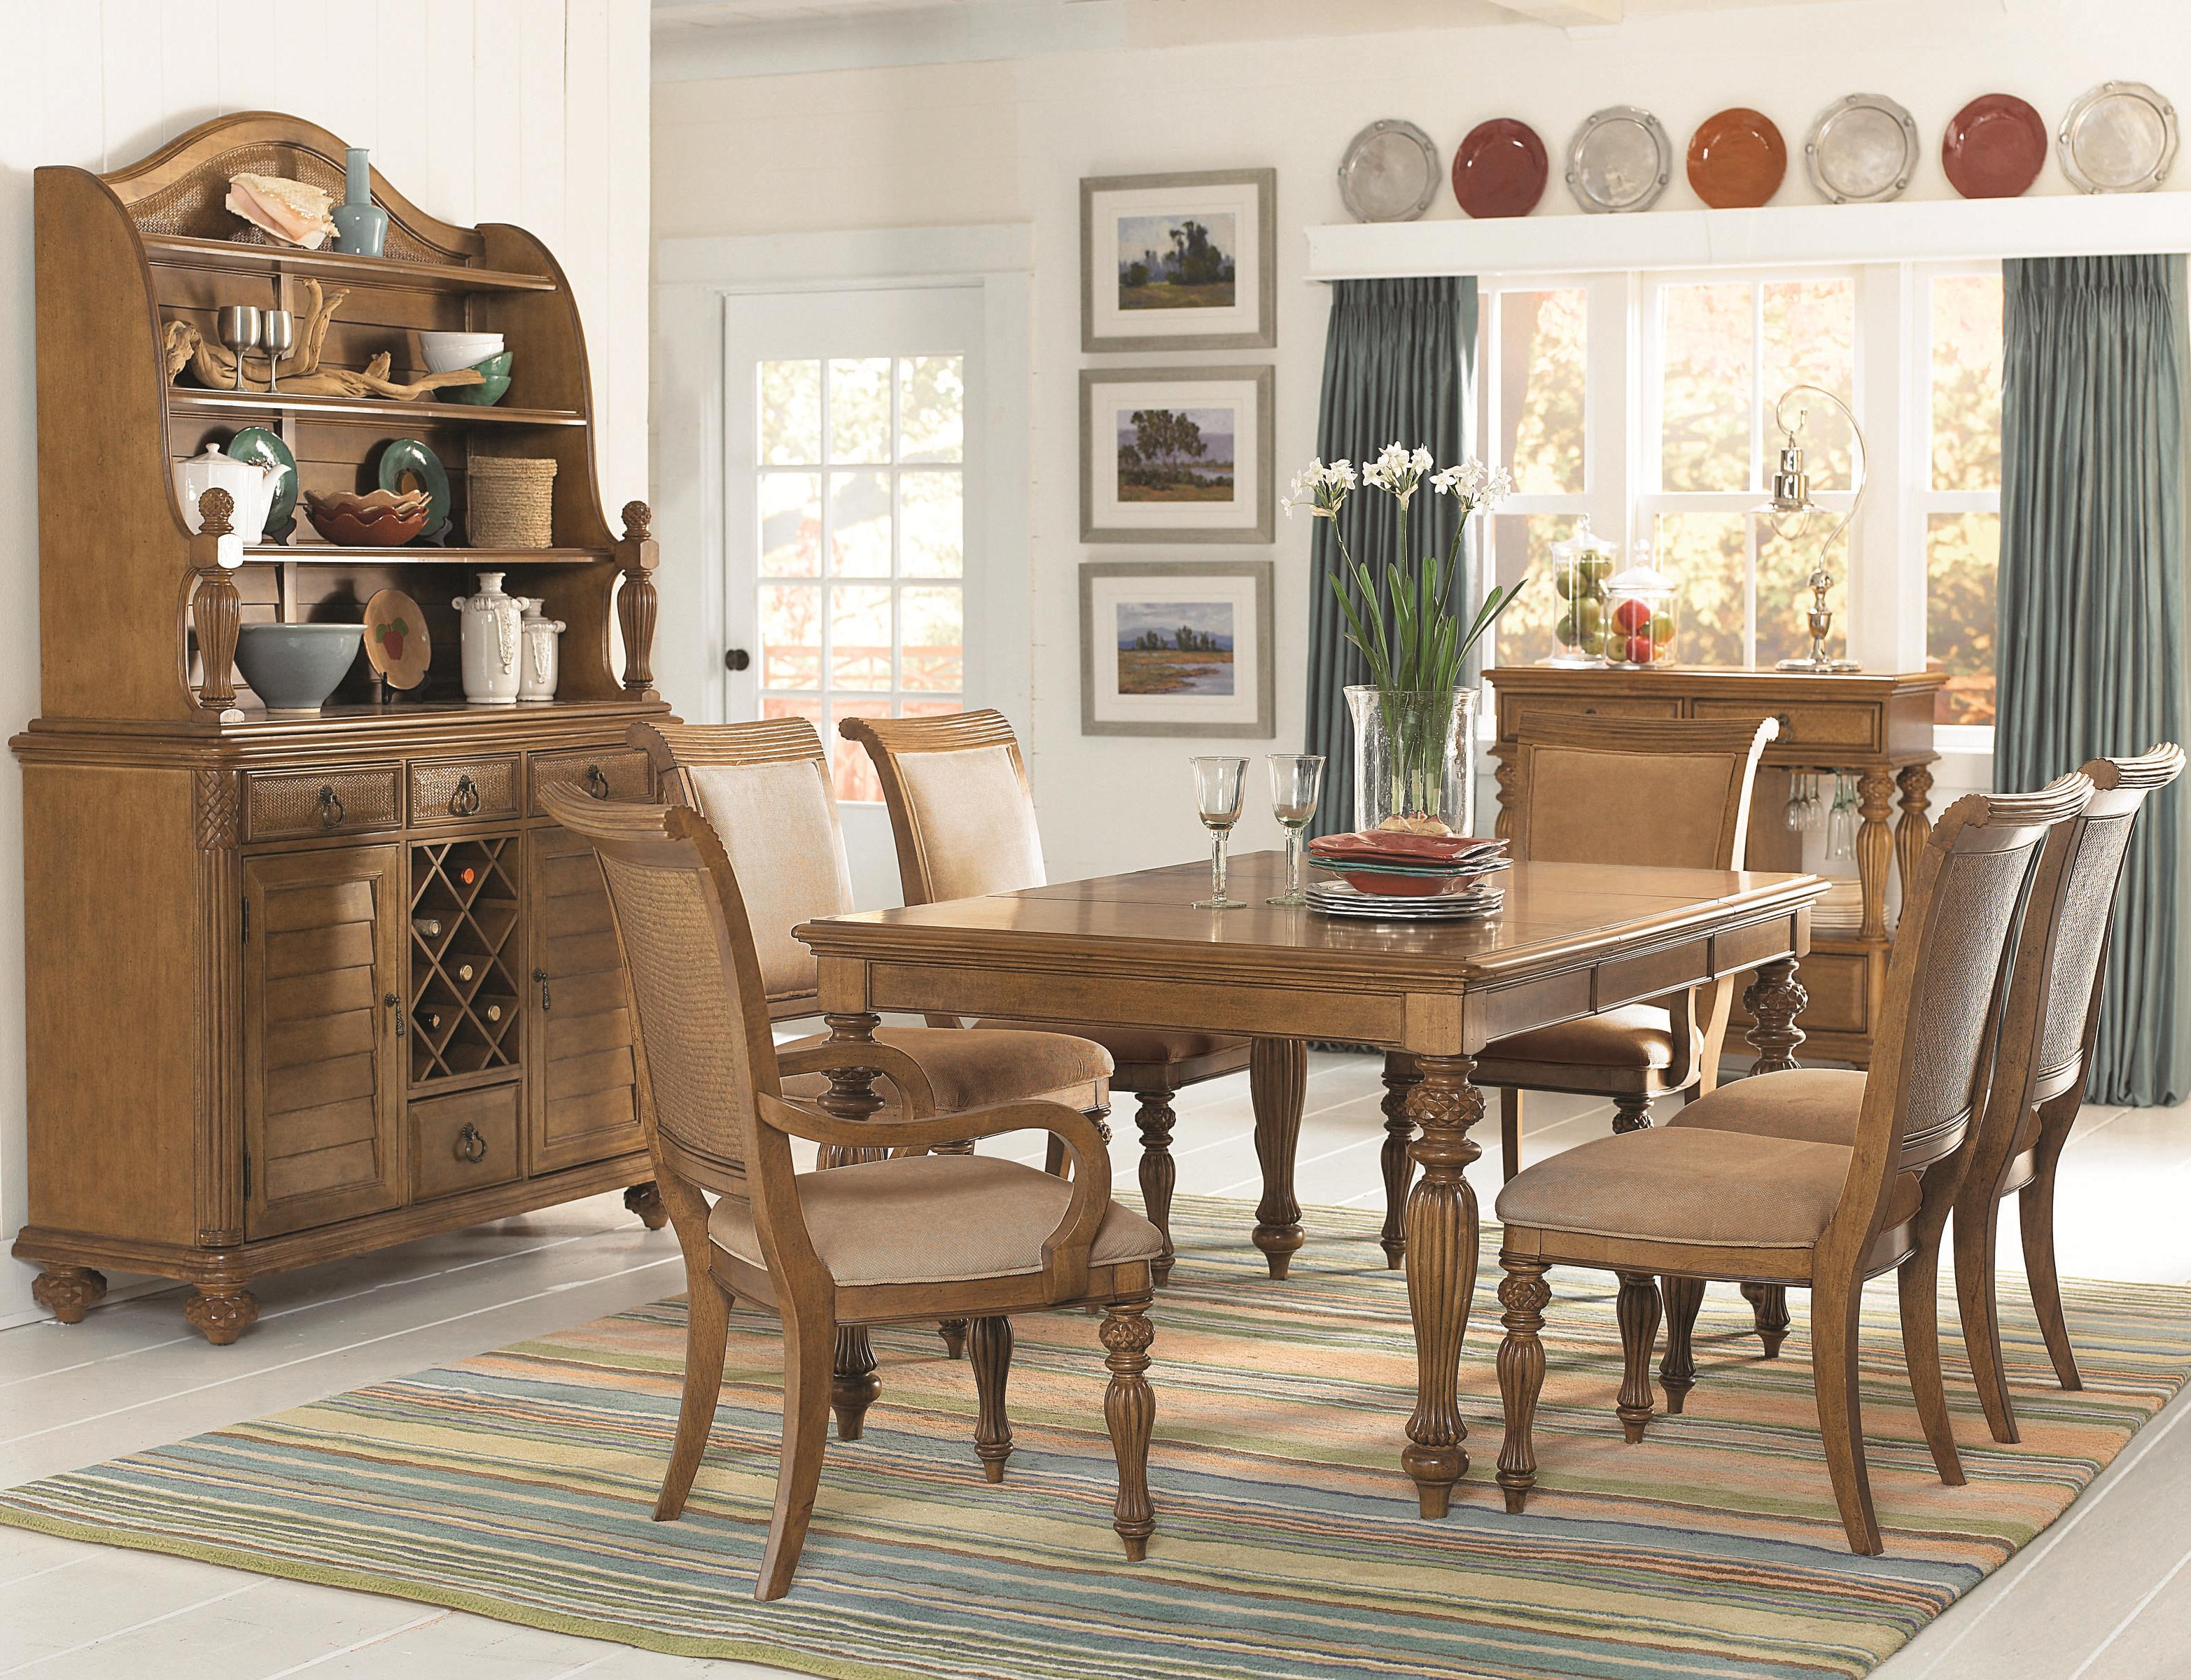 White Furniture Company Antique Dining Room Set